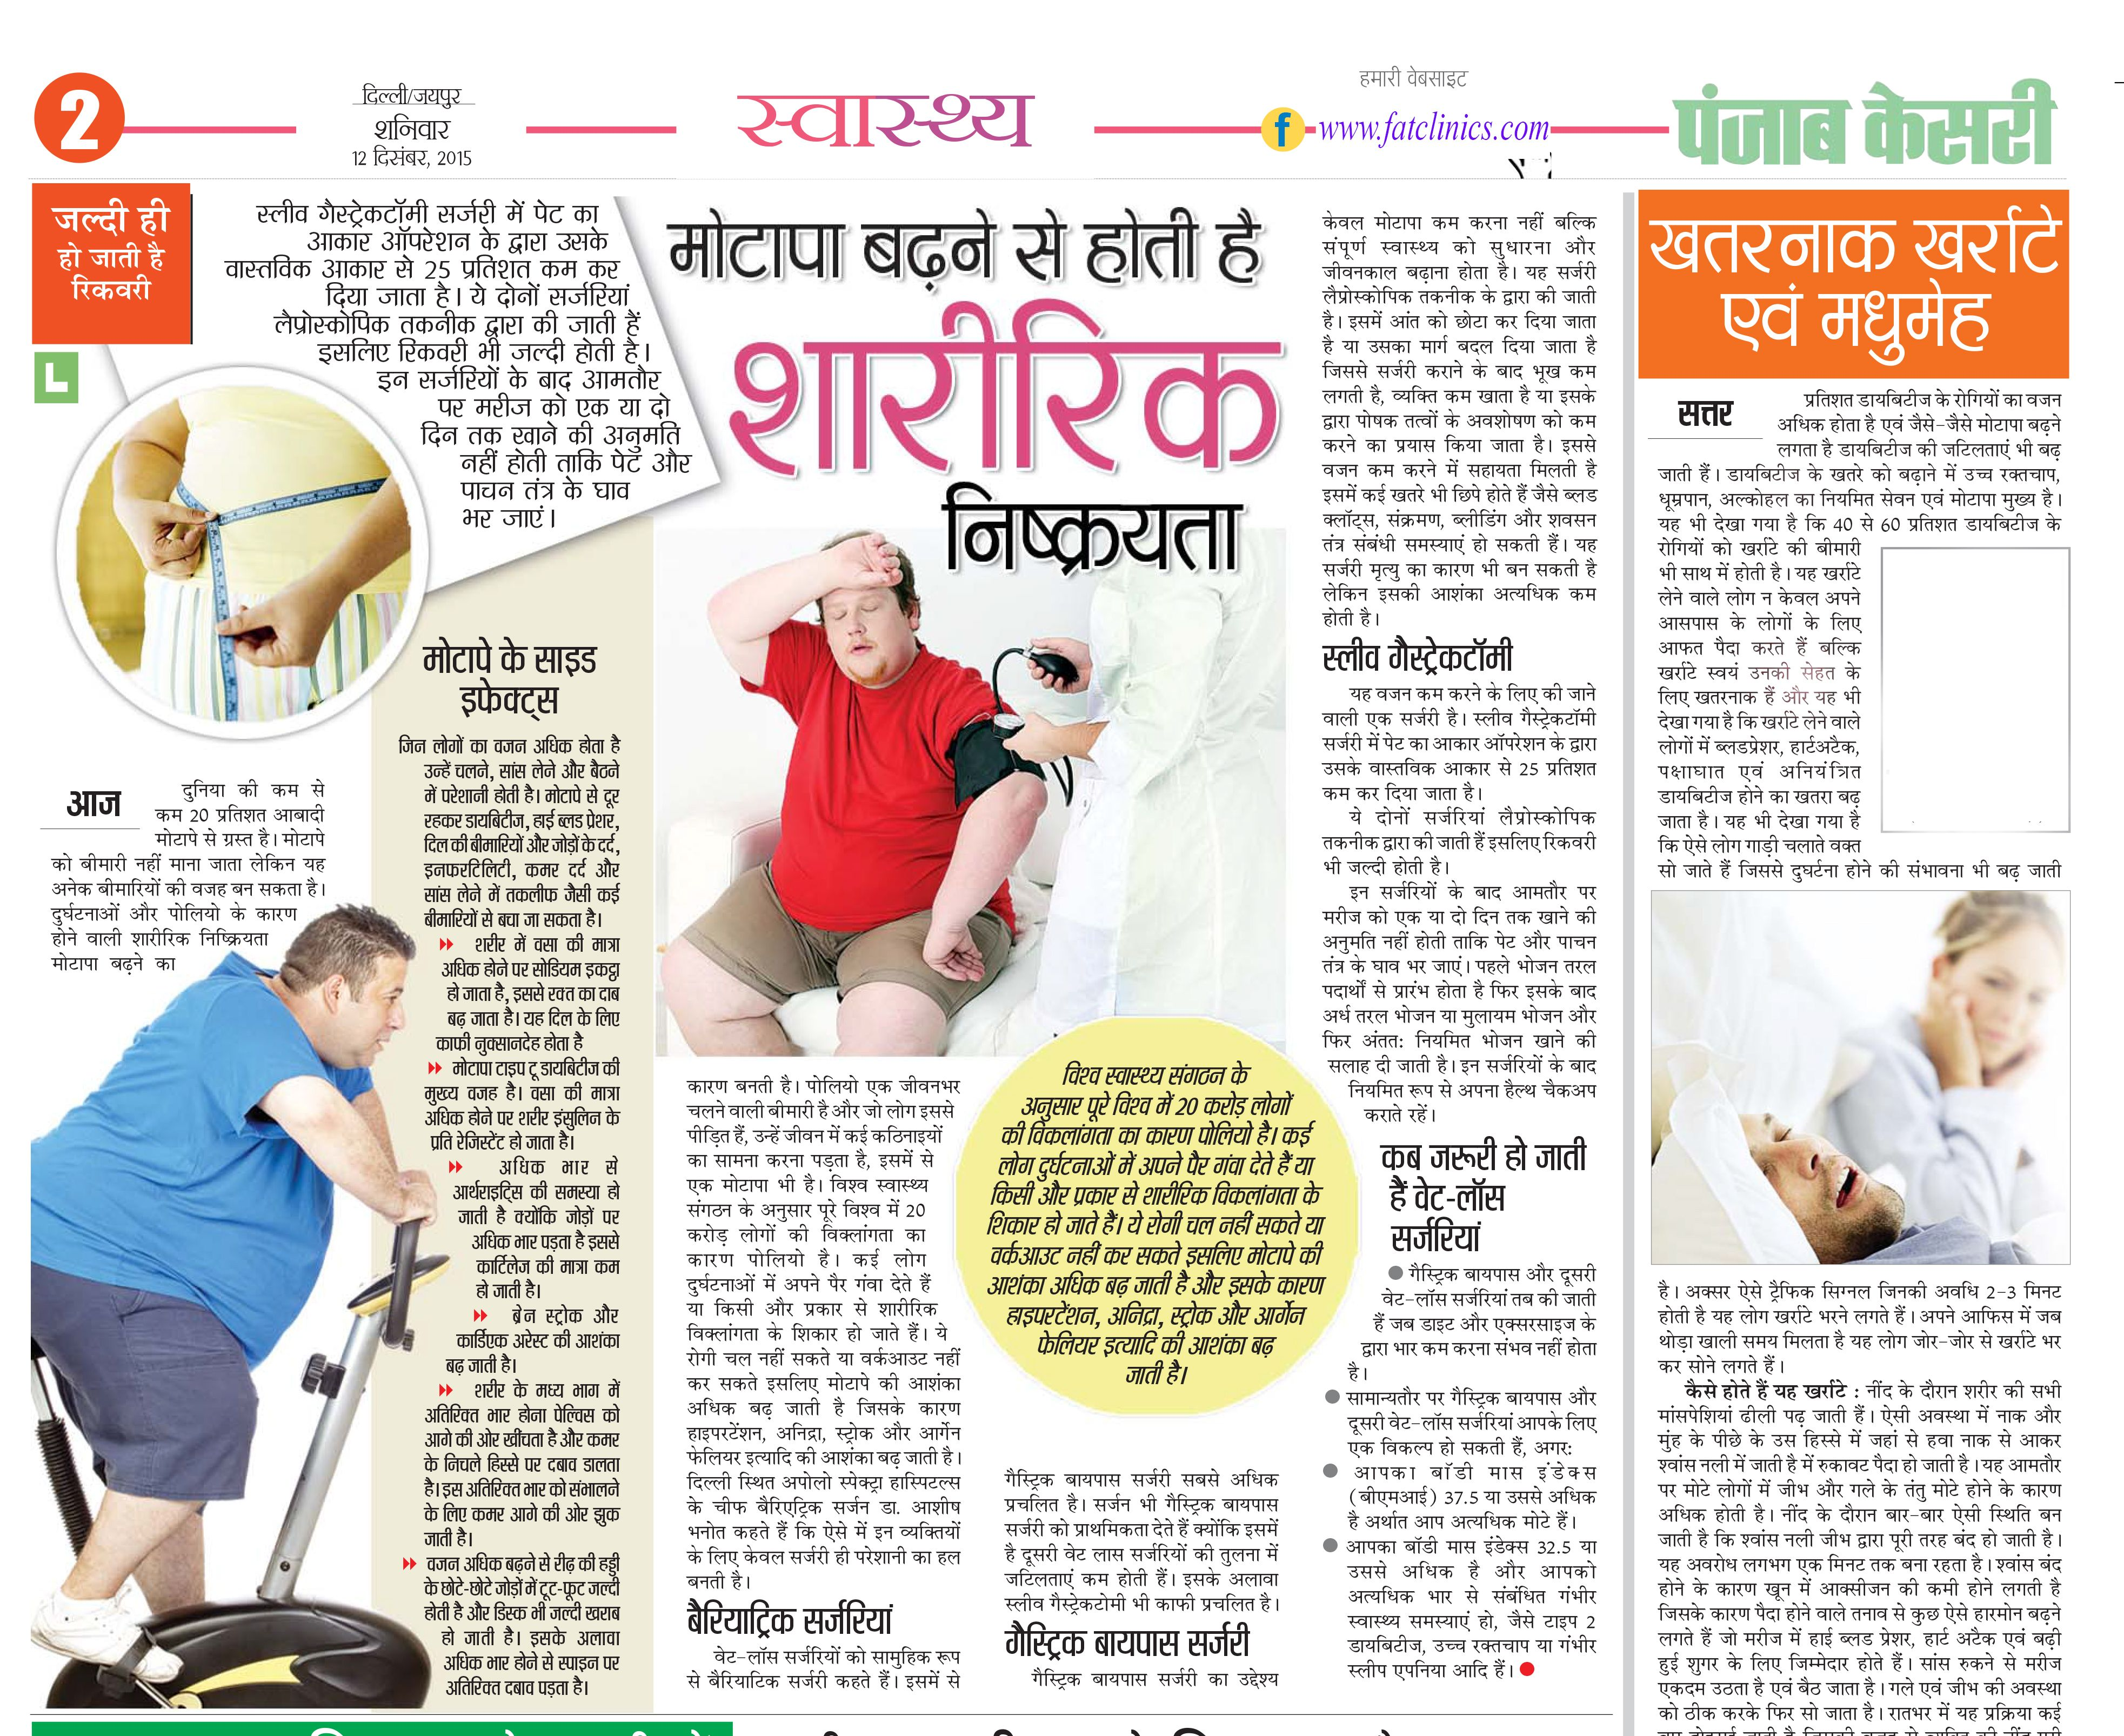 healthy food for weight loss in hindi fat loss facts pinterest